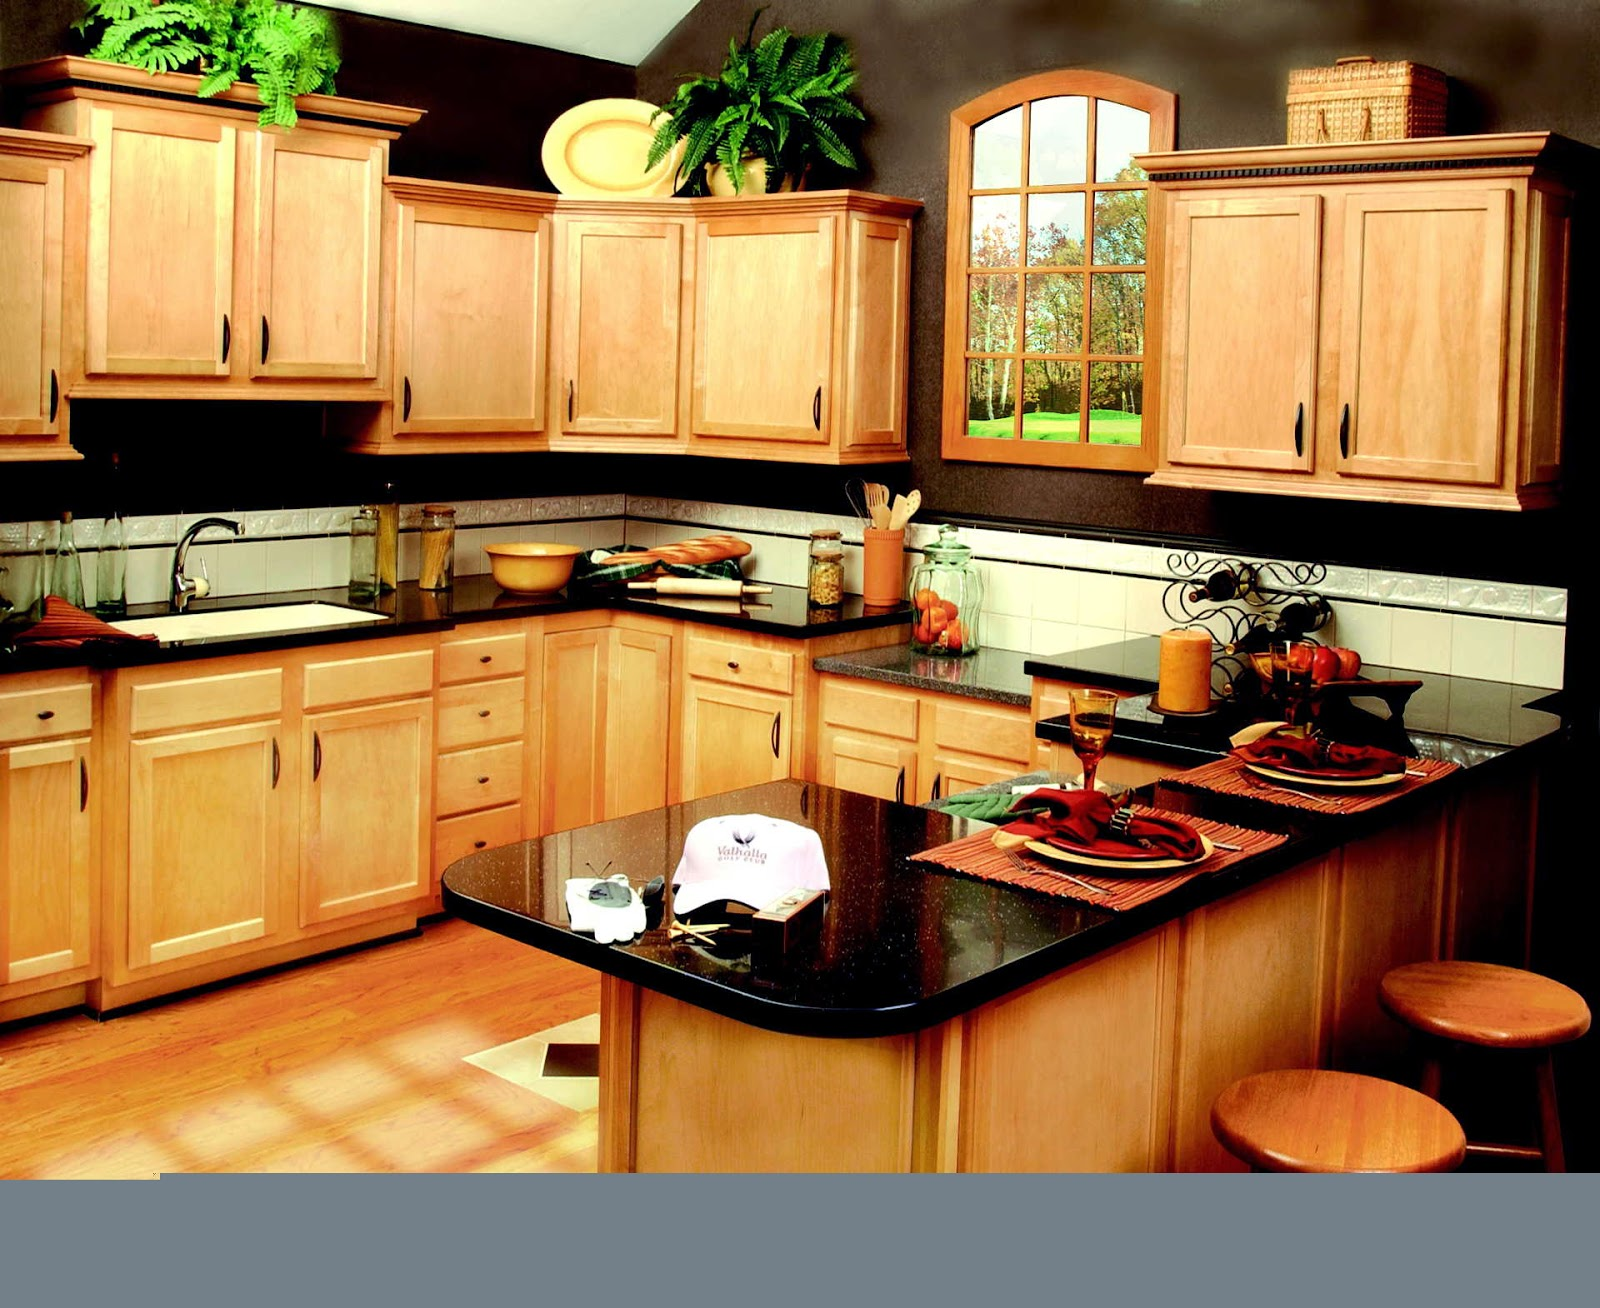 Fantasy Kitchen Design Interior Picture 08